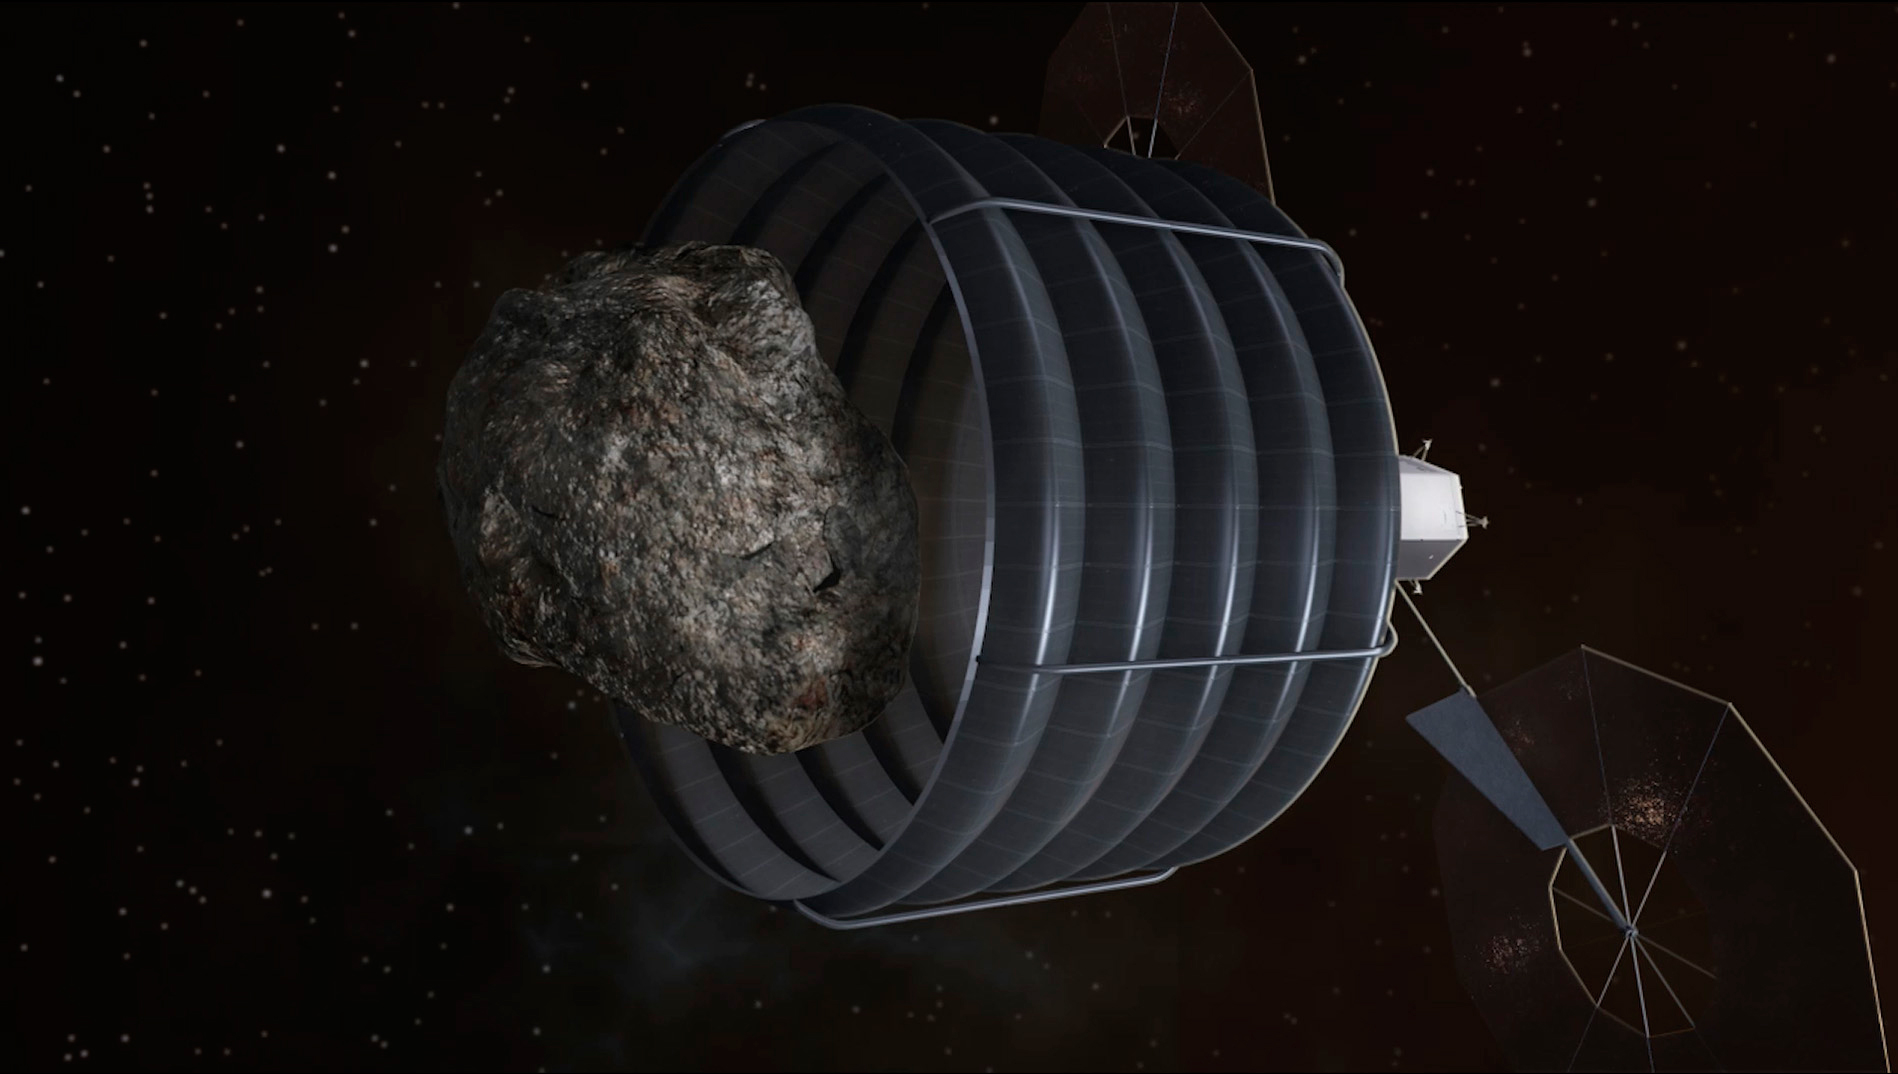 NASA asteroid capture. Image from: http://www.jpl.nasa.gov/asteroidwatch/newsfeatures.cfm?release=2013-131